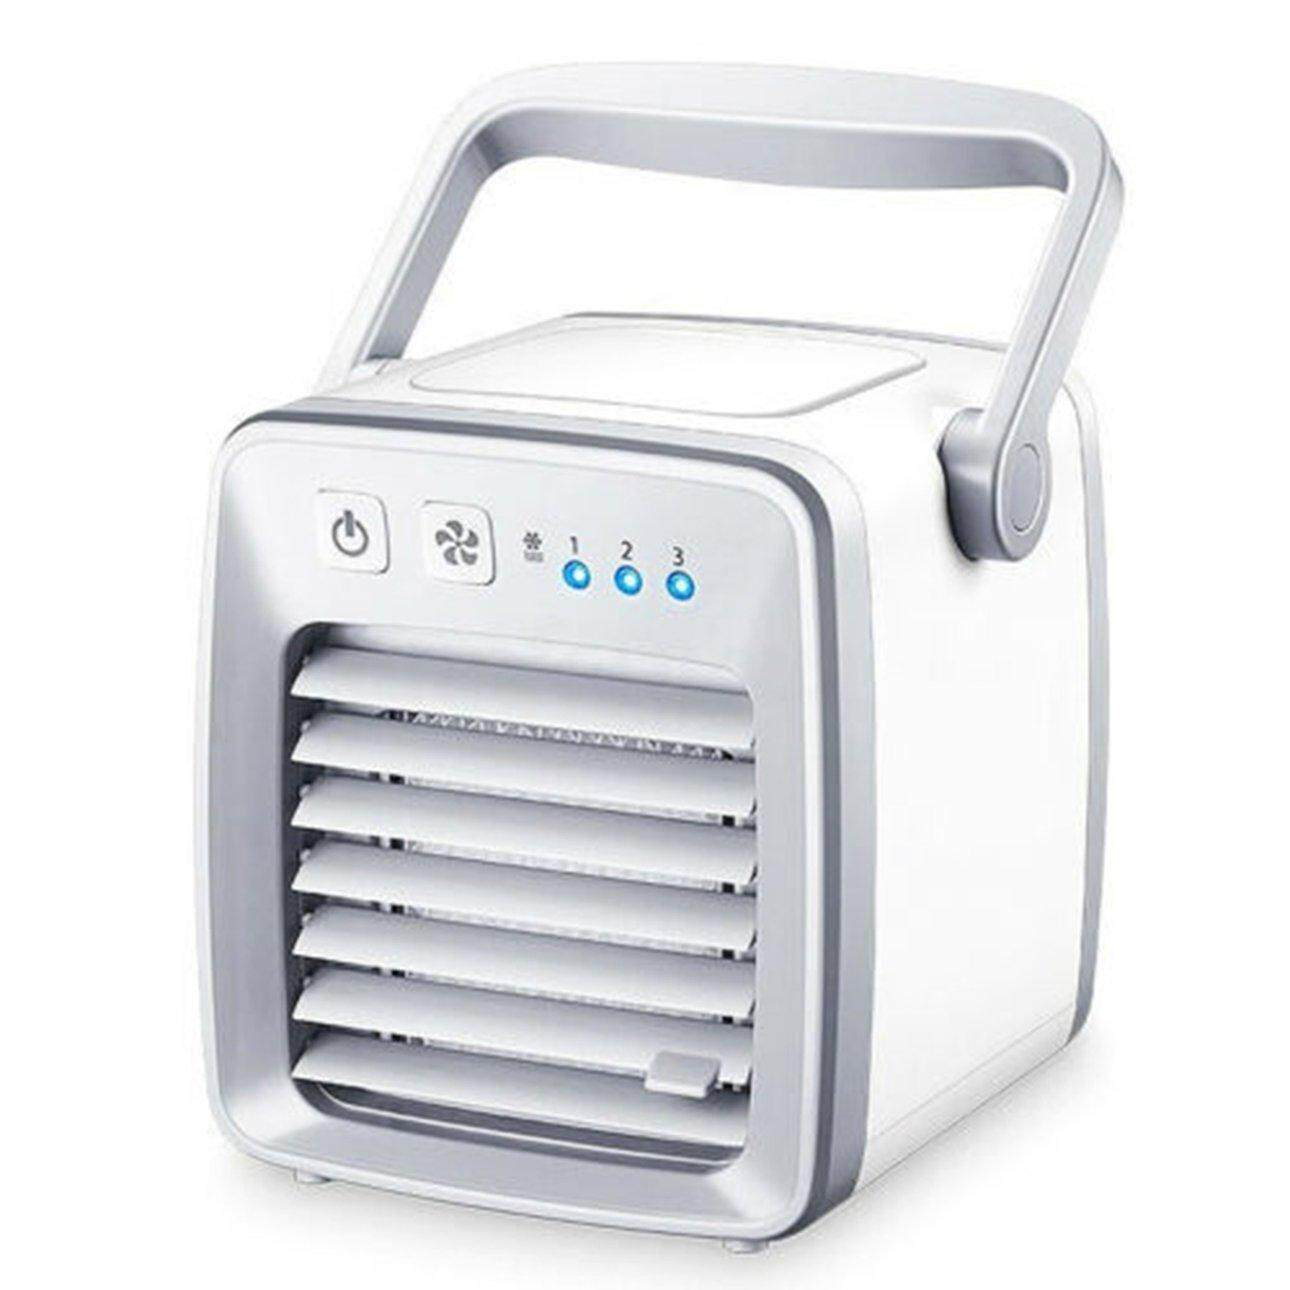 Best Sellers Refrigerator Air Conditioning Portable Fan Dormitory Air Conditioning Fan